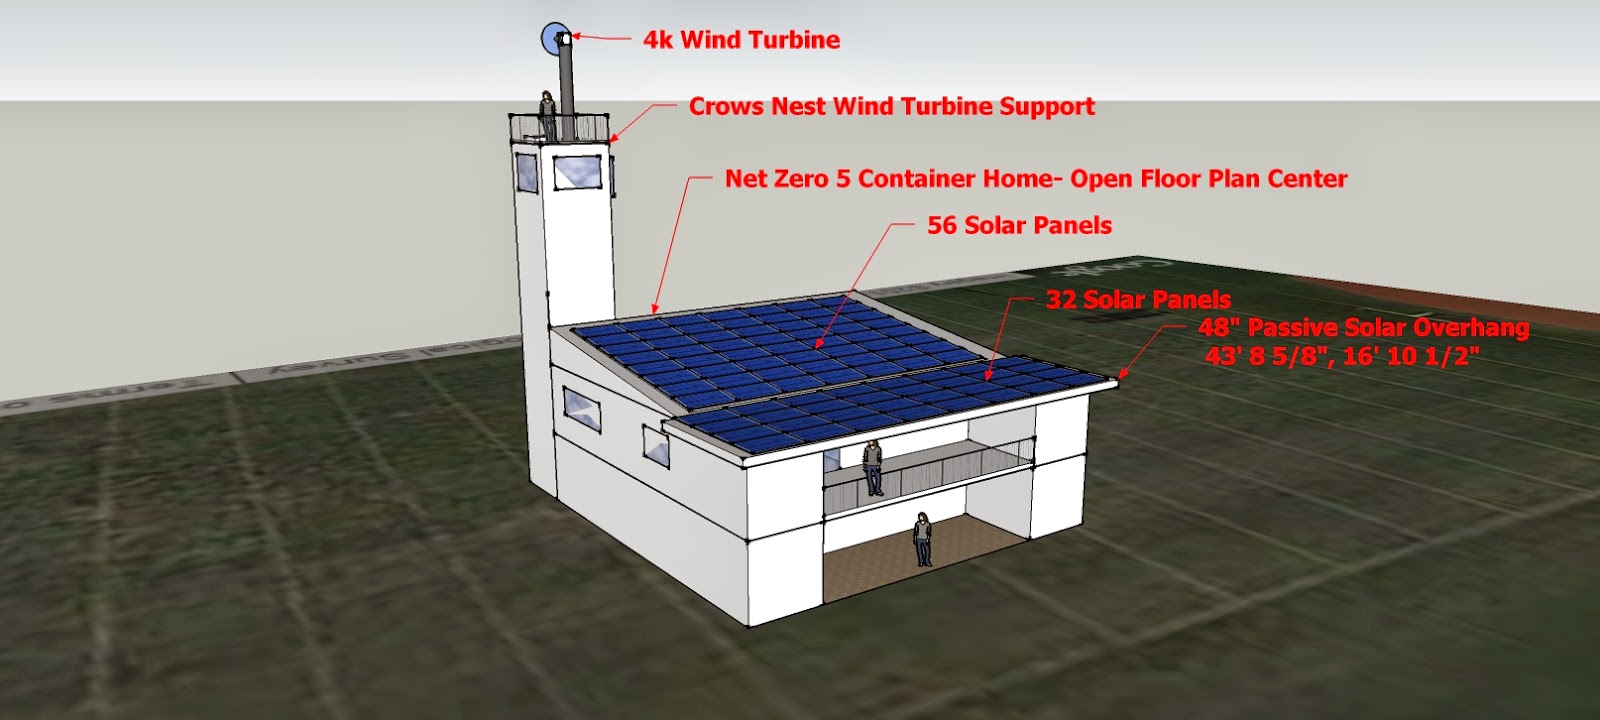 5 Container Open Floor Plan Net Zero Green Home Design by Scotty